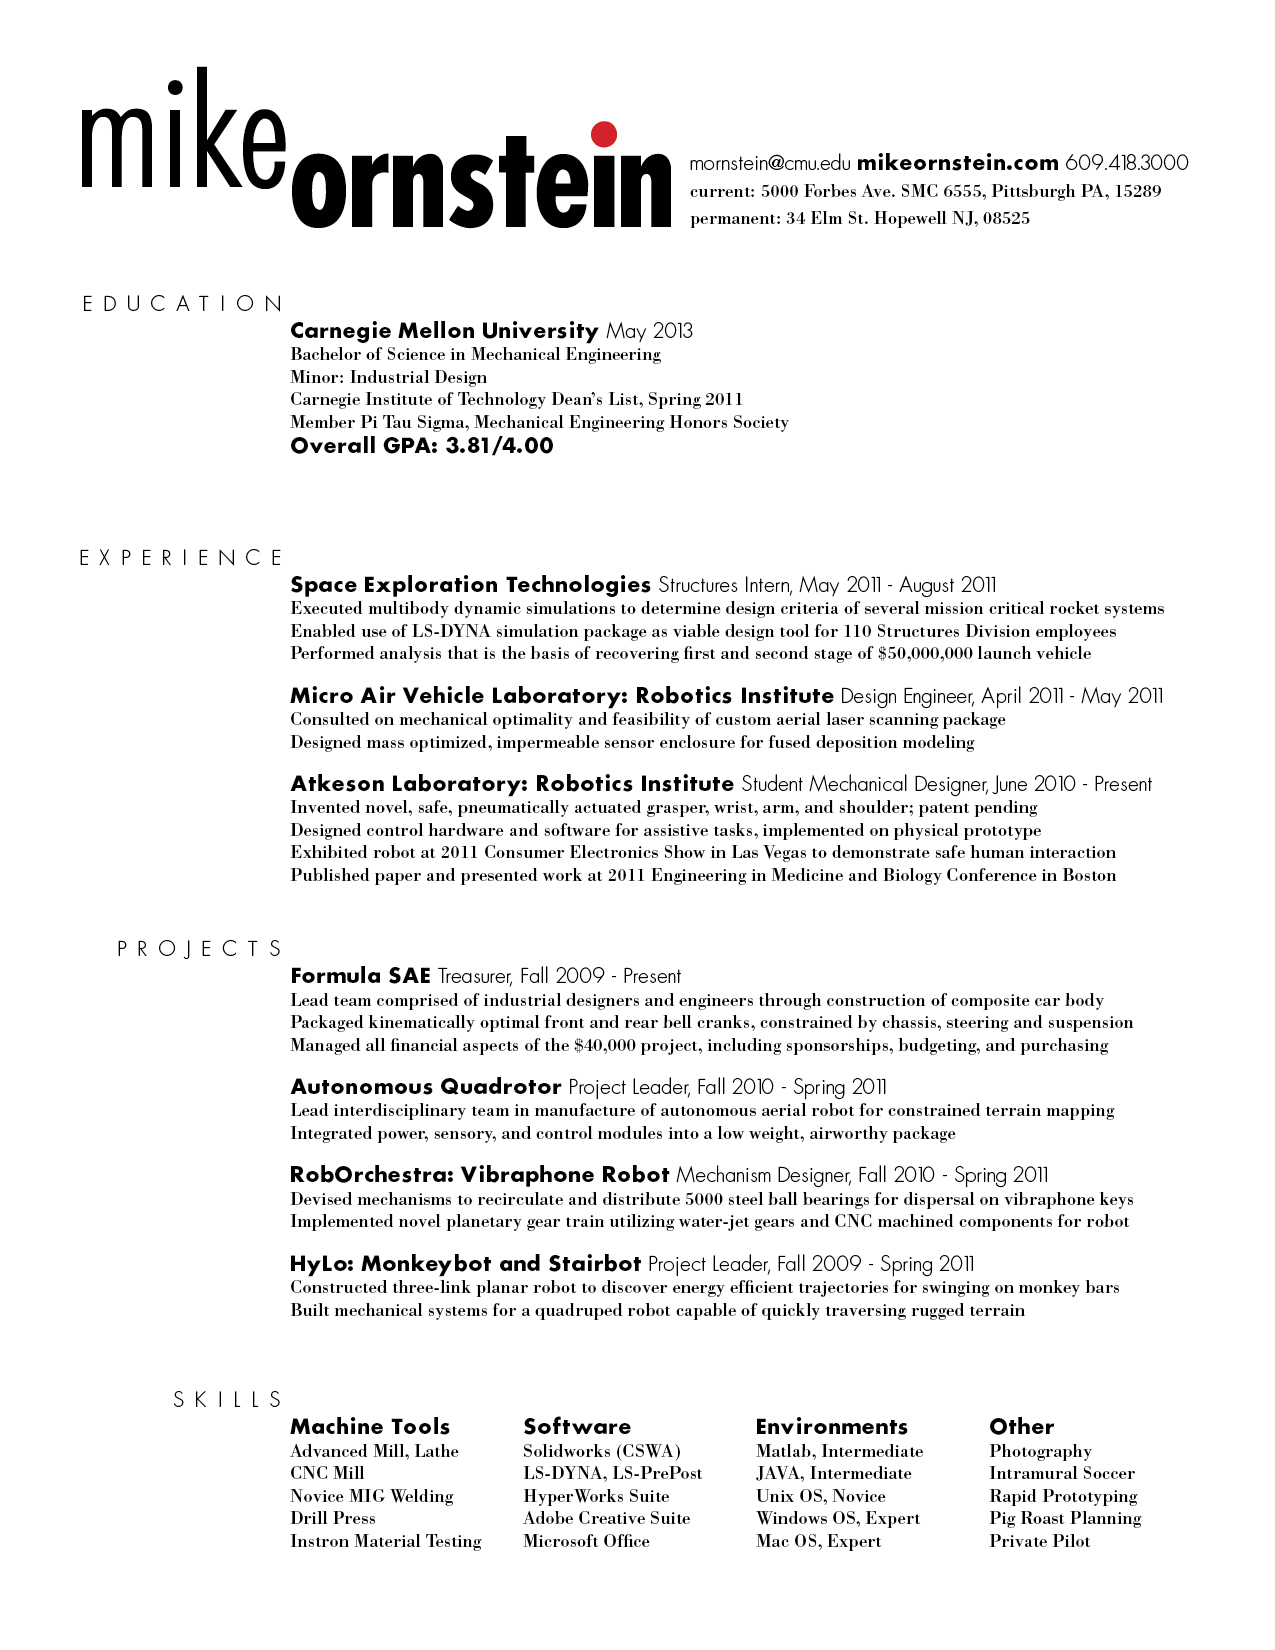 Business To Business Resume Mike Ornstein Cdf Fall 2011 Assignments And Musings